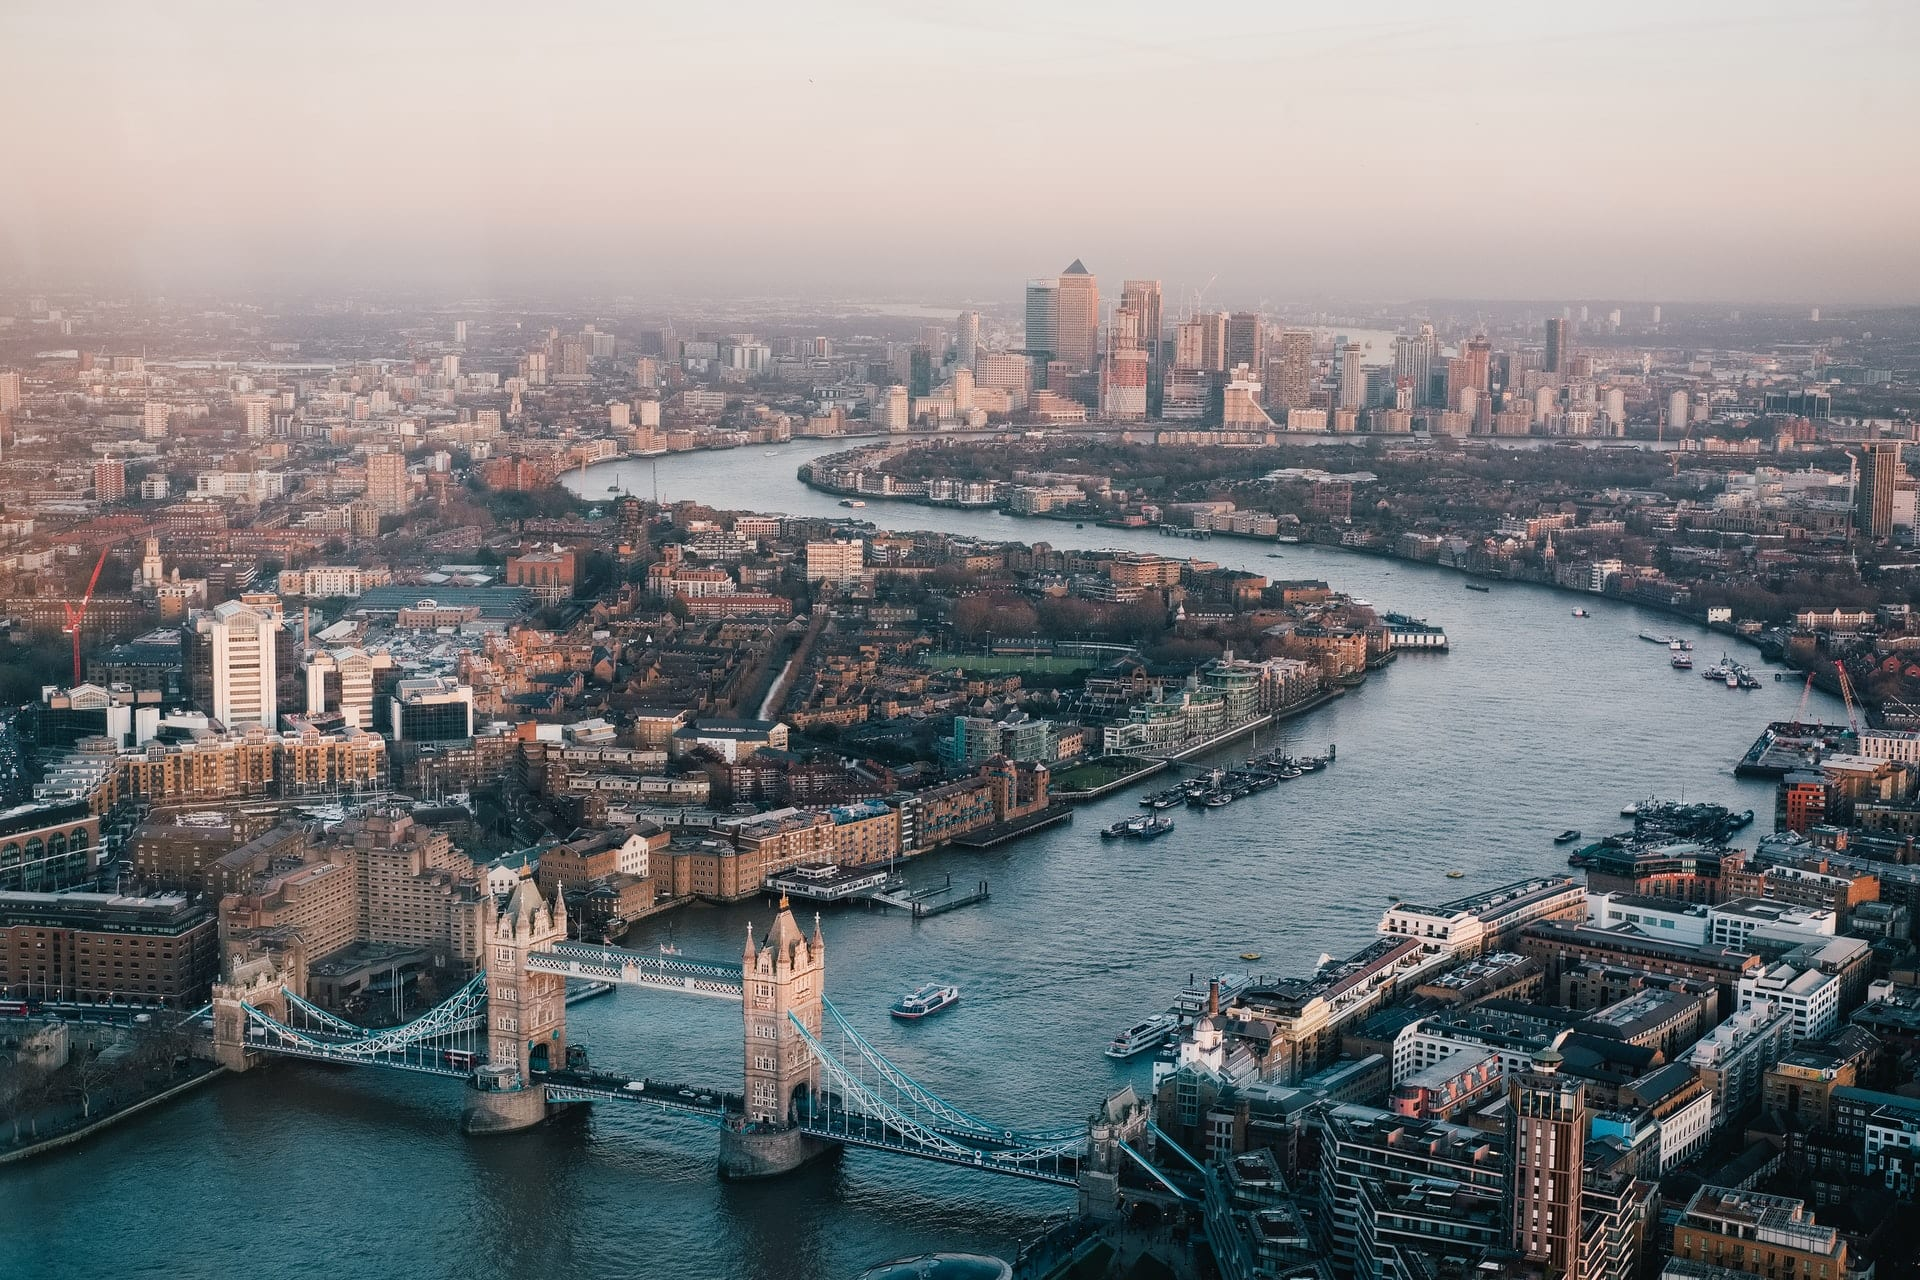 aerial-view-of-tower-bridge-and-the-river-thames-in-london-at-sunset